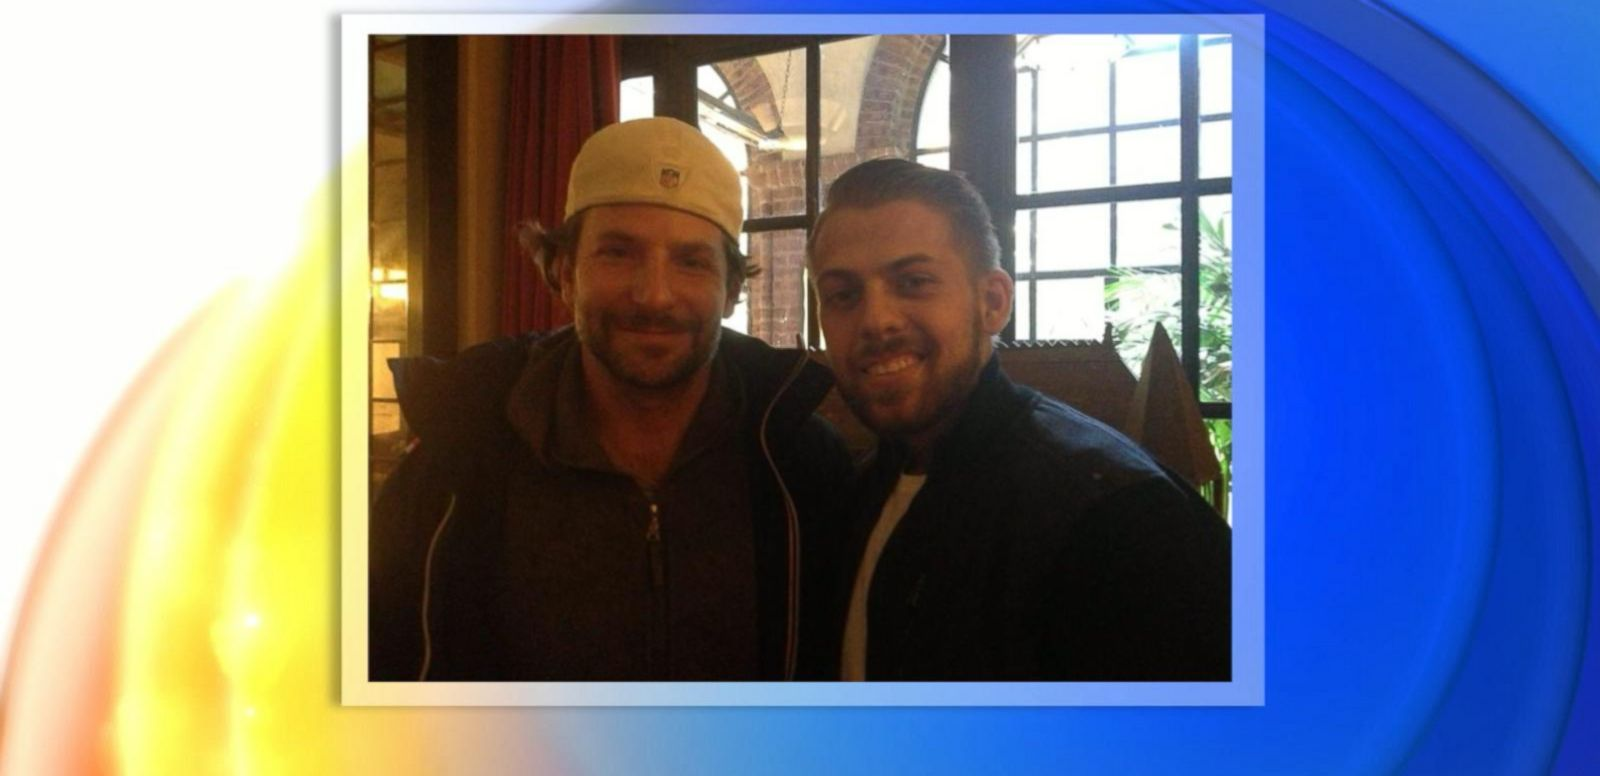 VIDEO: Bradley Cooper Raises Awareness of Bone Marrow Donation to Save Man's Life